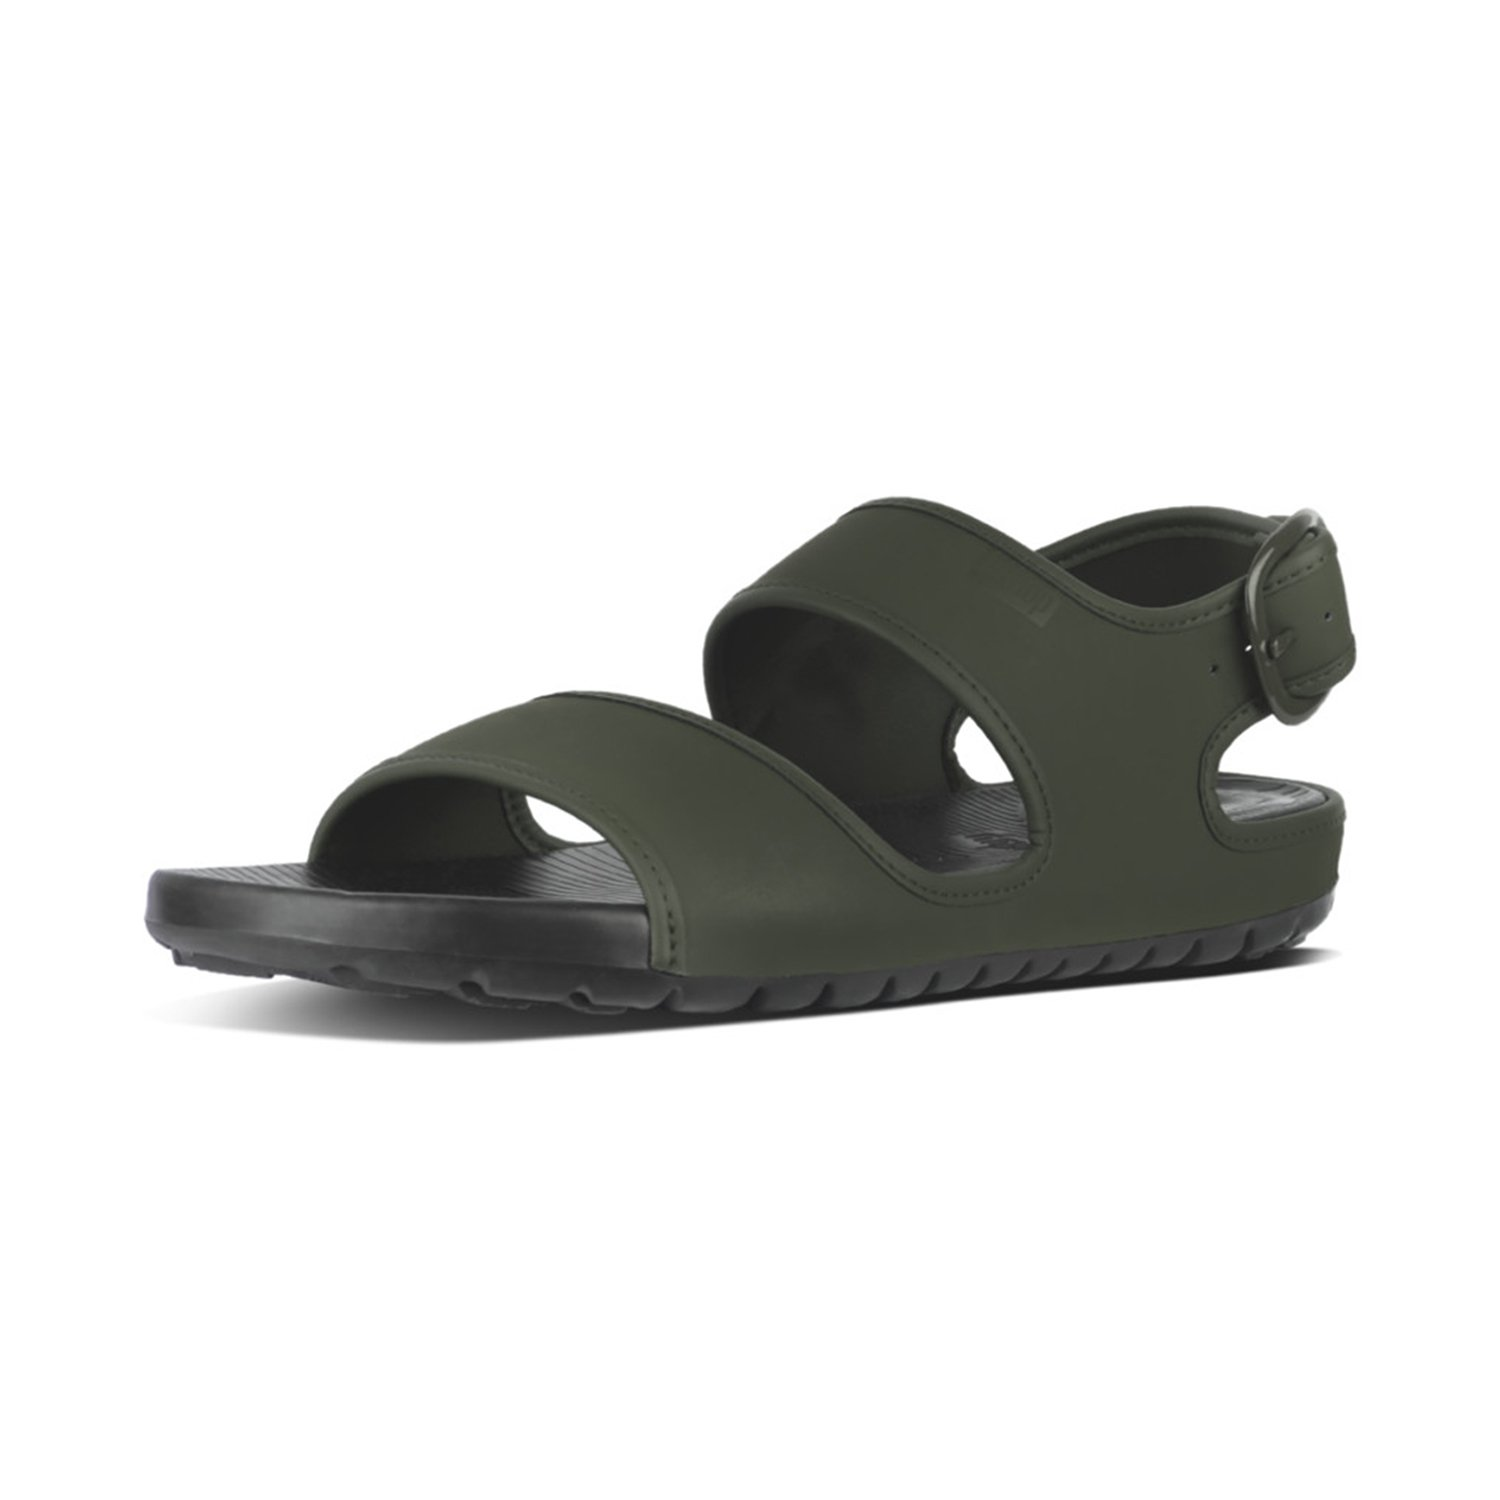 TALLA 42 EU. Fitflop Lido TM Back-Strap Sandals In Neoprene, Chanclas para Hombre